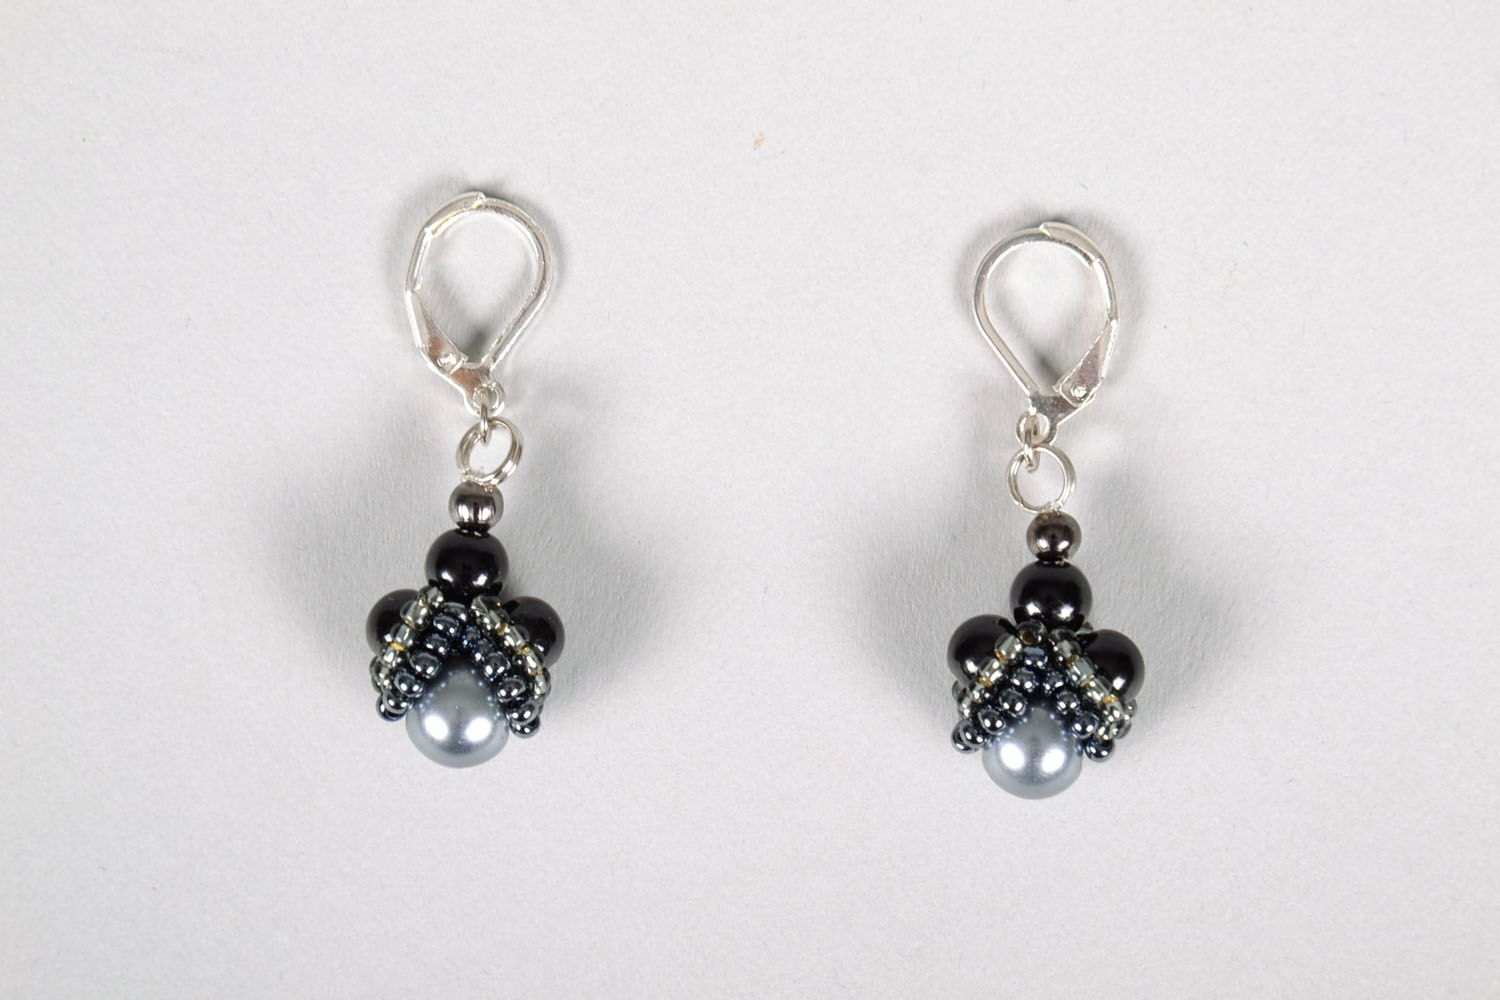 Earrings with charms Black Garnet photo 2